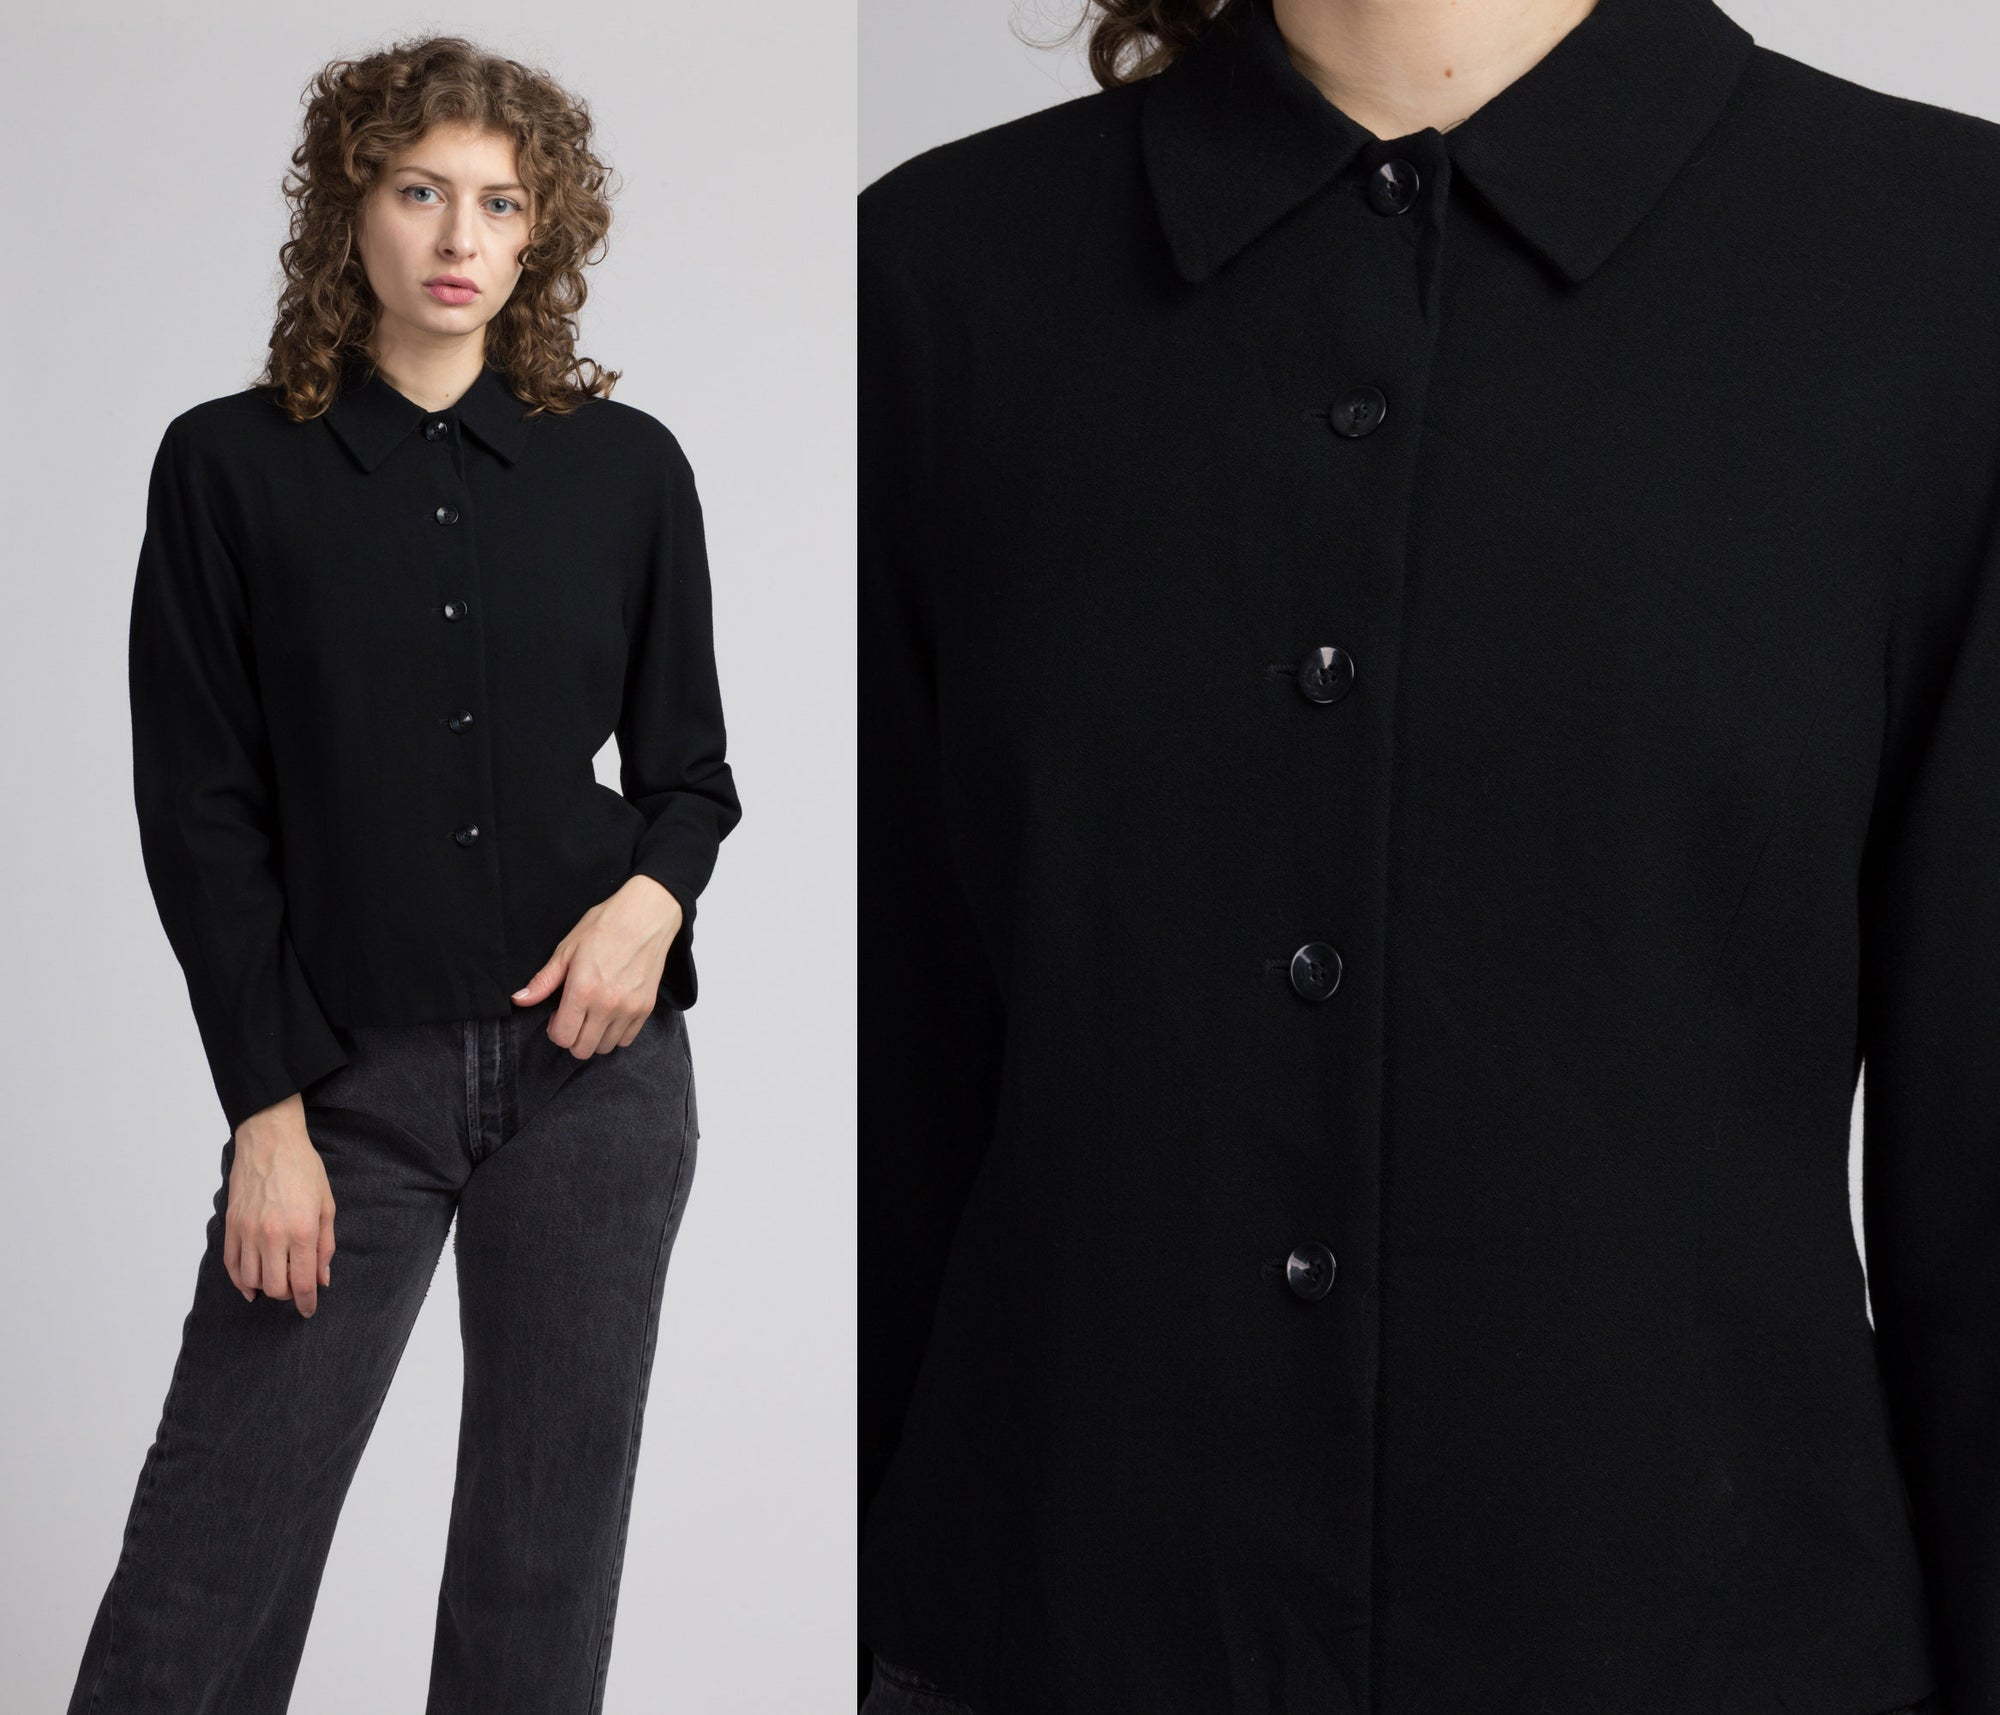 80s 90s Black Wool Button Up Top - Medium